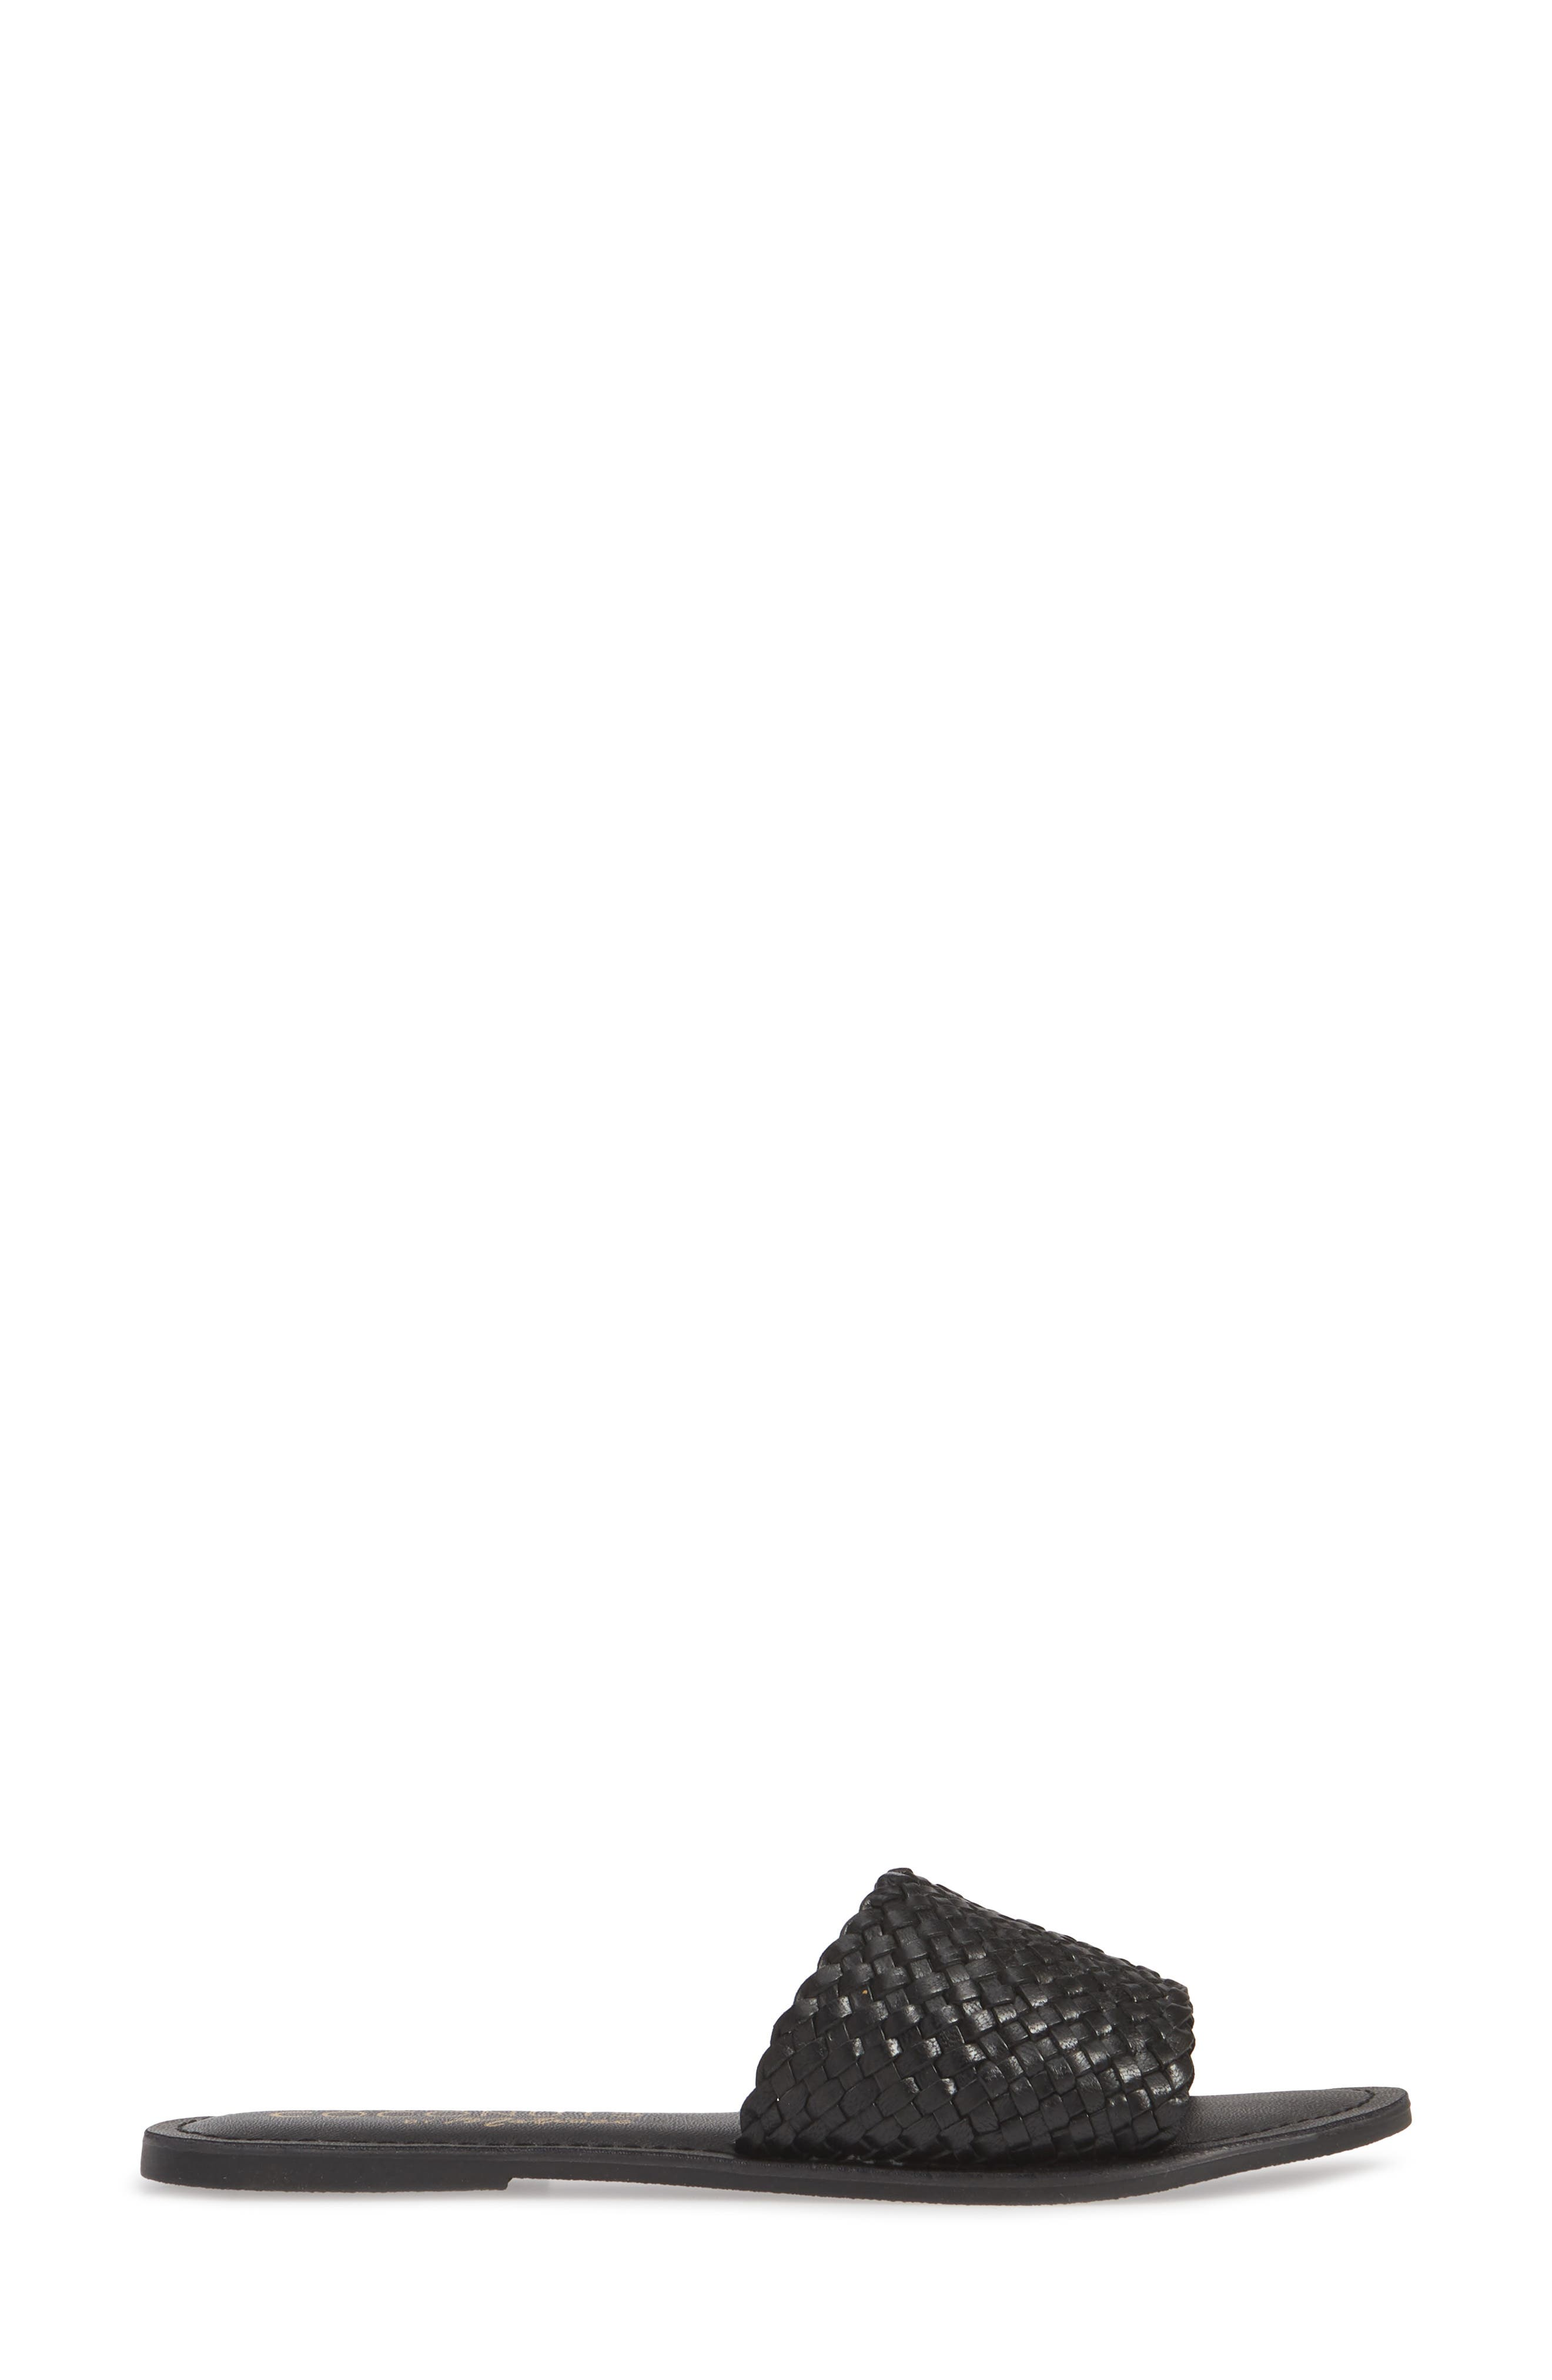 COCONUTS BY MATISSE,                             Zuma Woven Slide Sandal,                             Alternate thumbnail 3, color,                             BLACK LEATHER